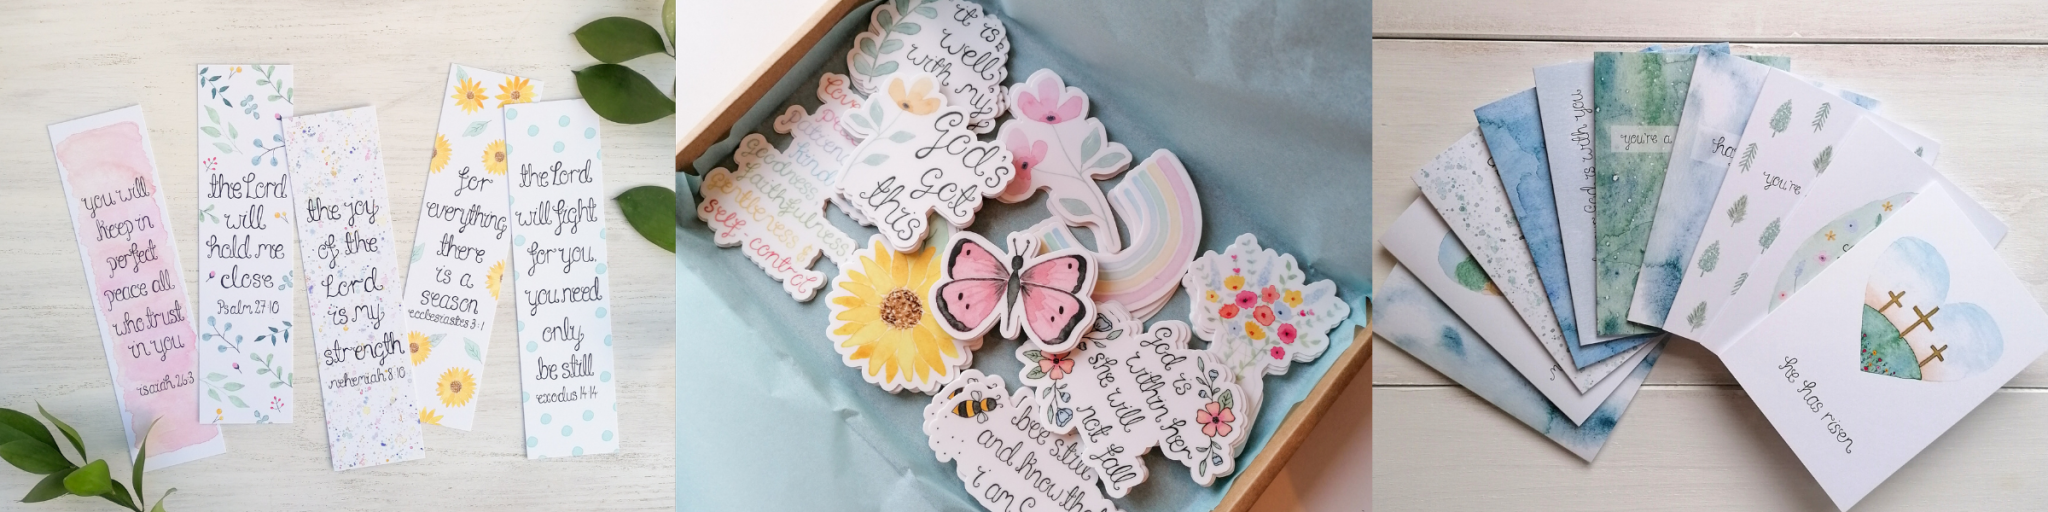 wholesale image for Treasured creativity website, with images of bible verse bookmarks, christian encouragement cards and floral stickers, all available for wholesale from treasured creativity